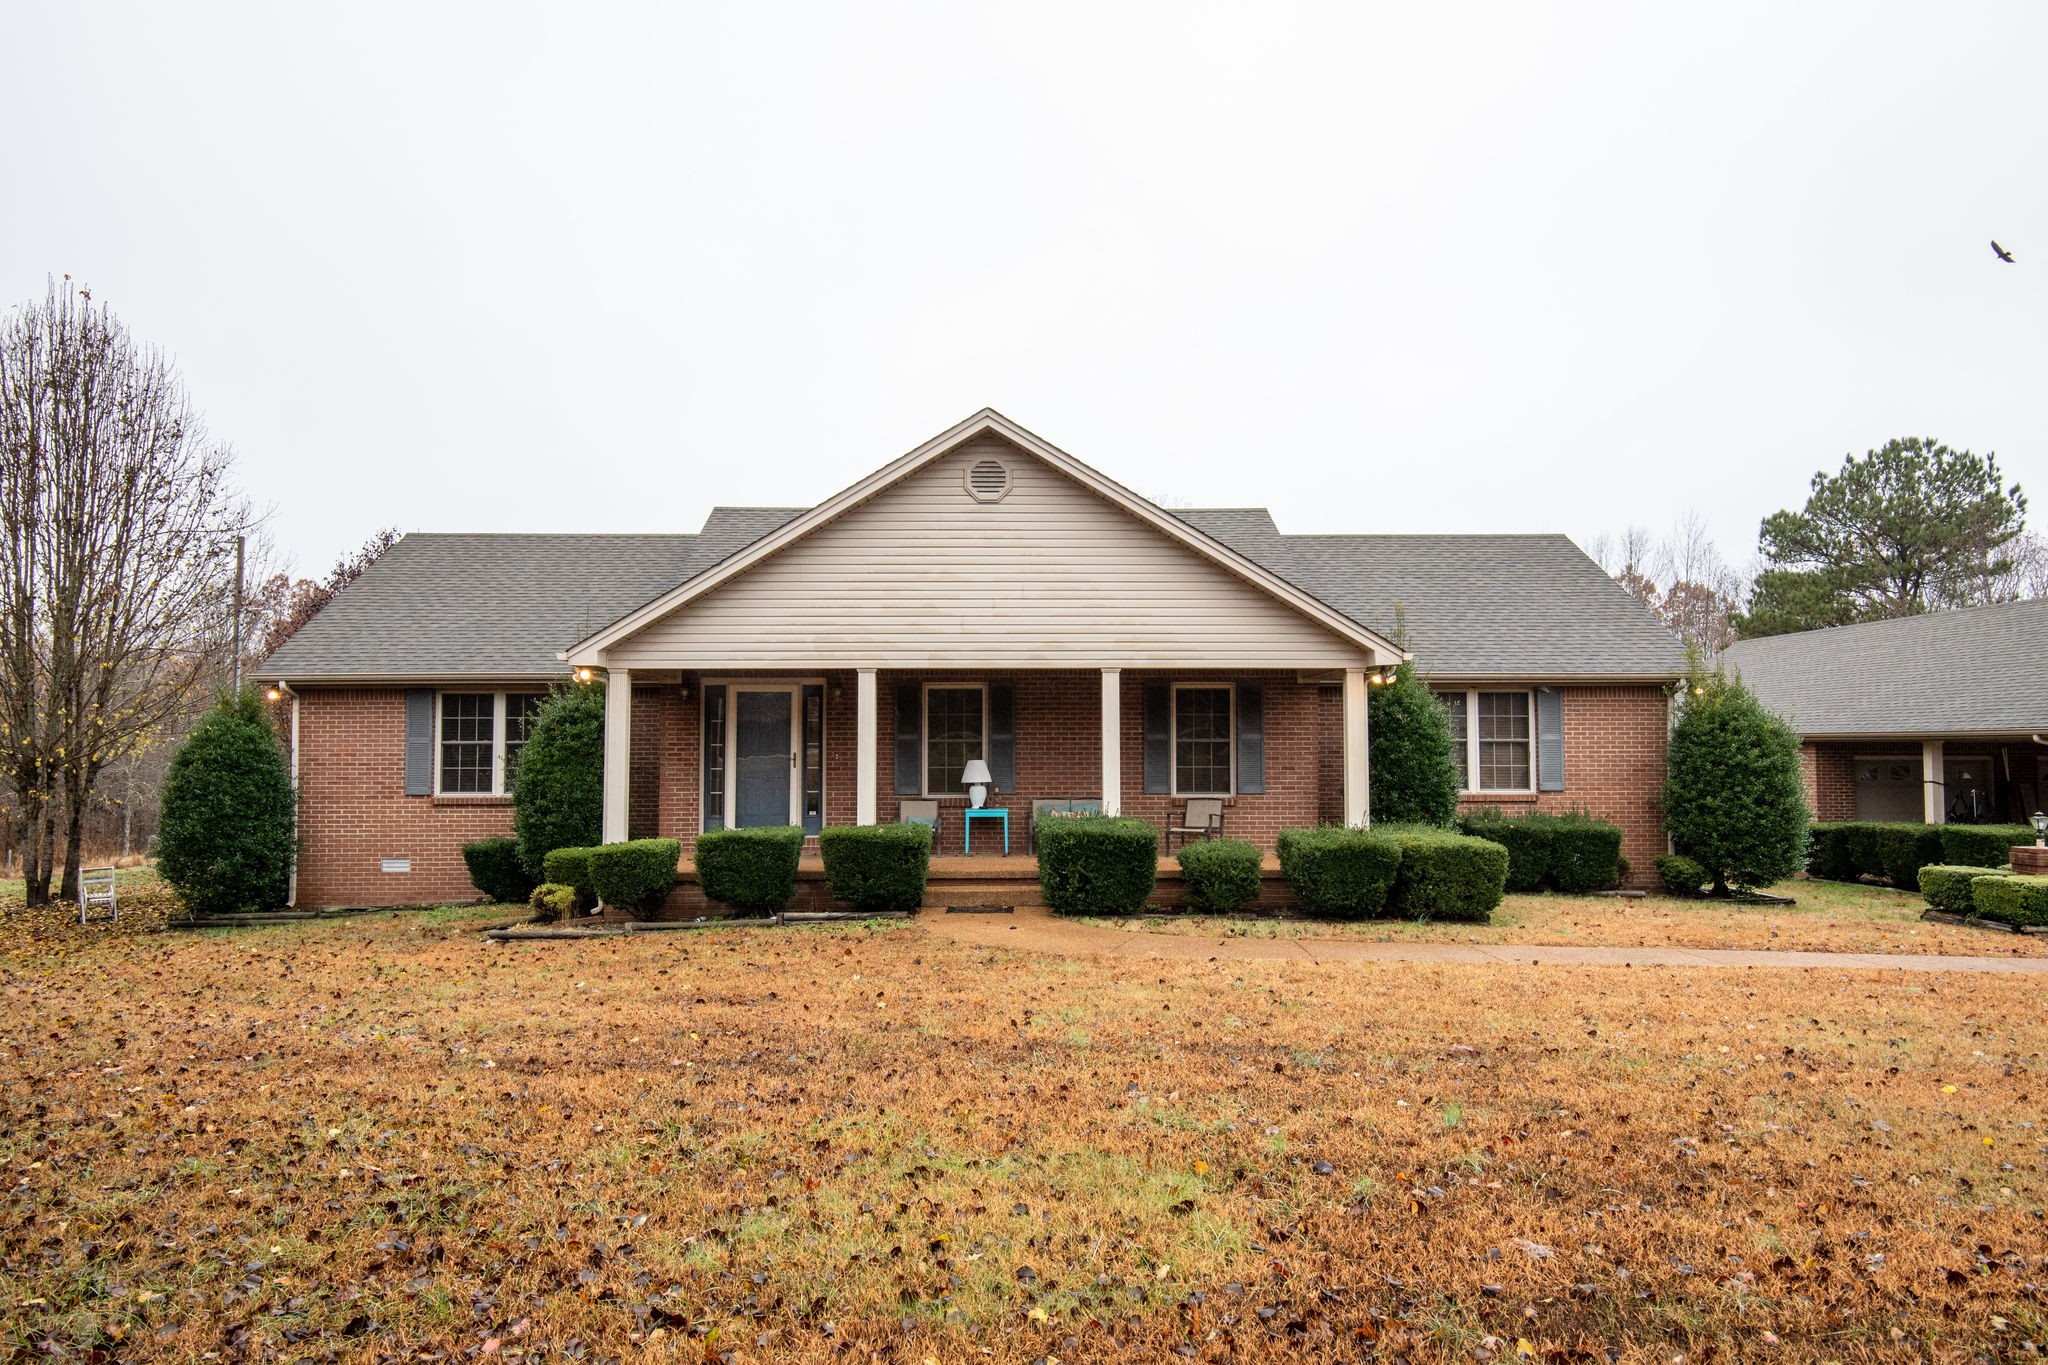 2122 Buffalo Rd, Hohenwald, TN 38462 - Hohenwald, TN real estate listing